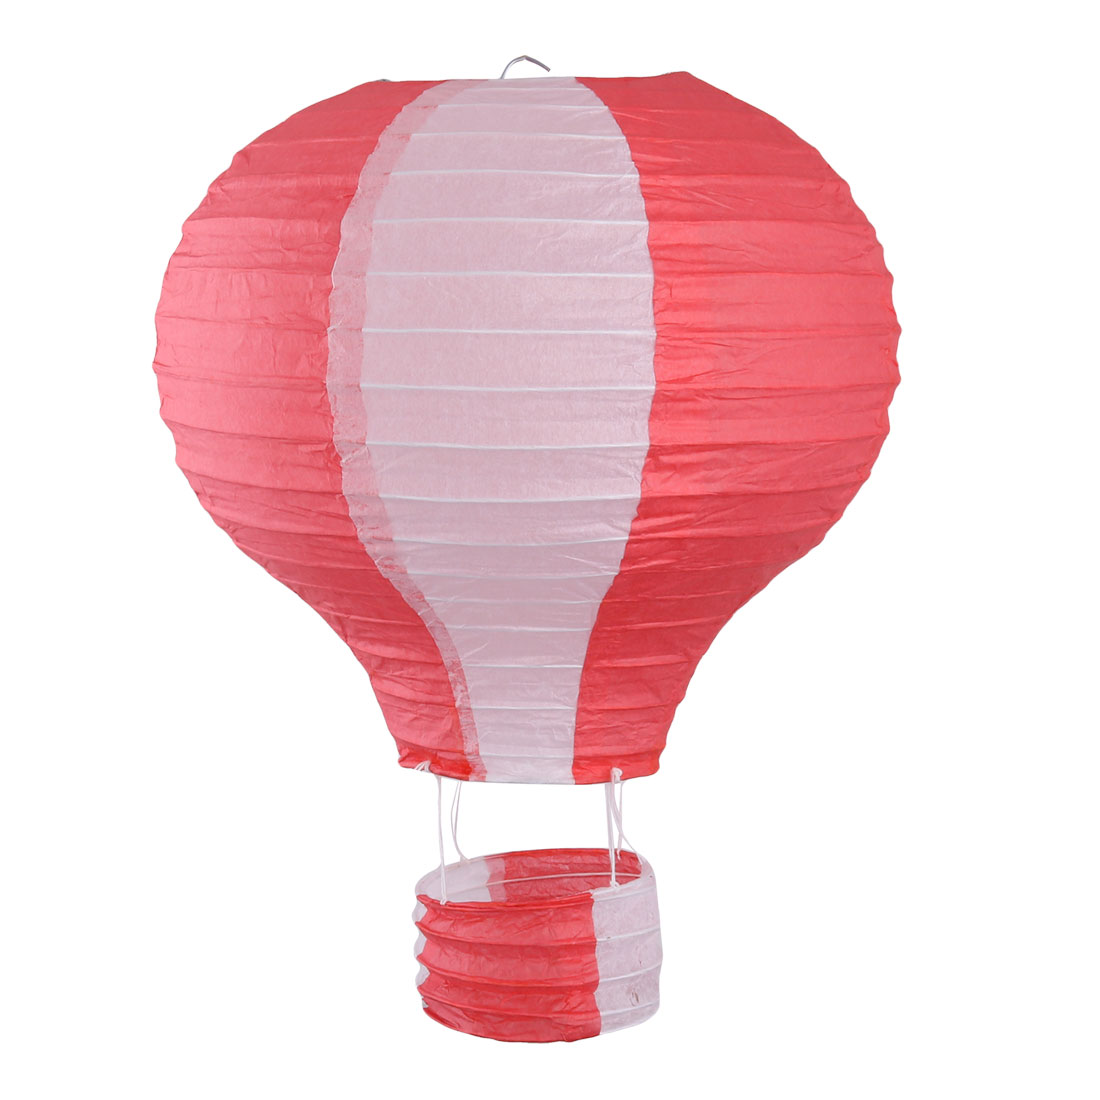 Restaurant Party Paper Lightless Hanging DIY Decor Hot Air Balloon Lantern Red White 10 Inch Dia